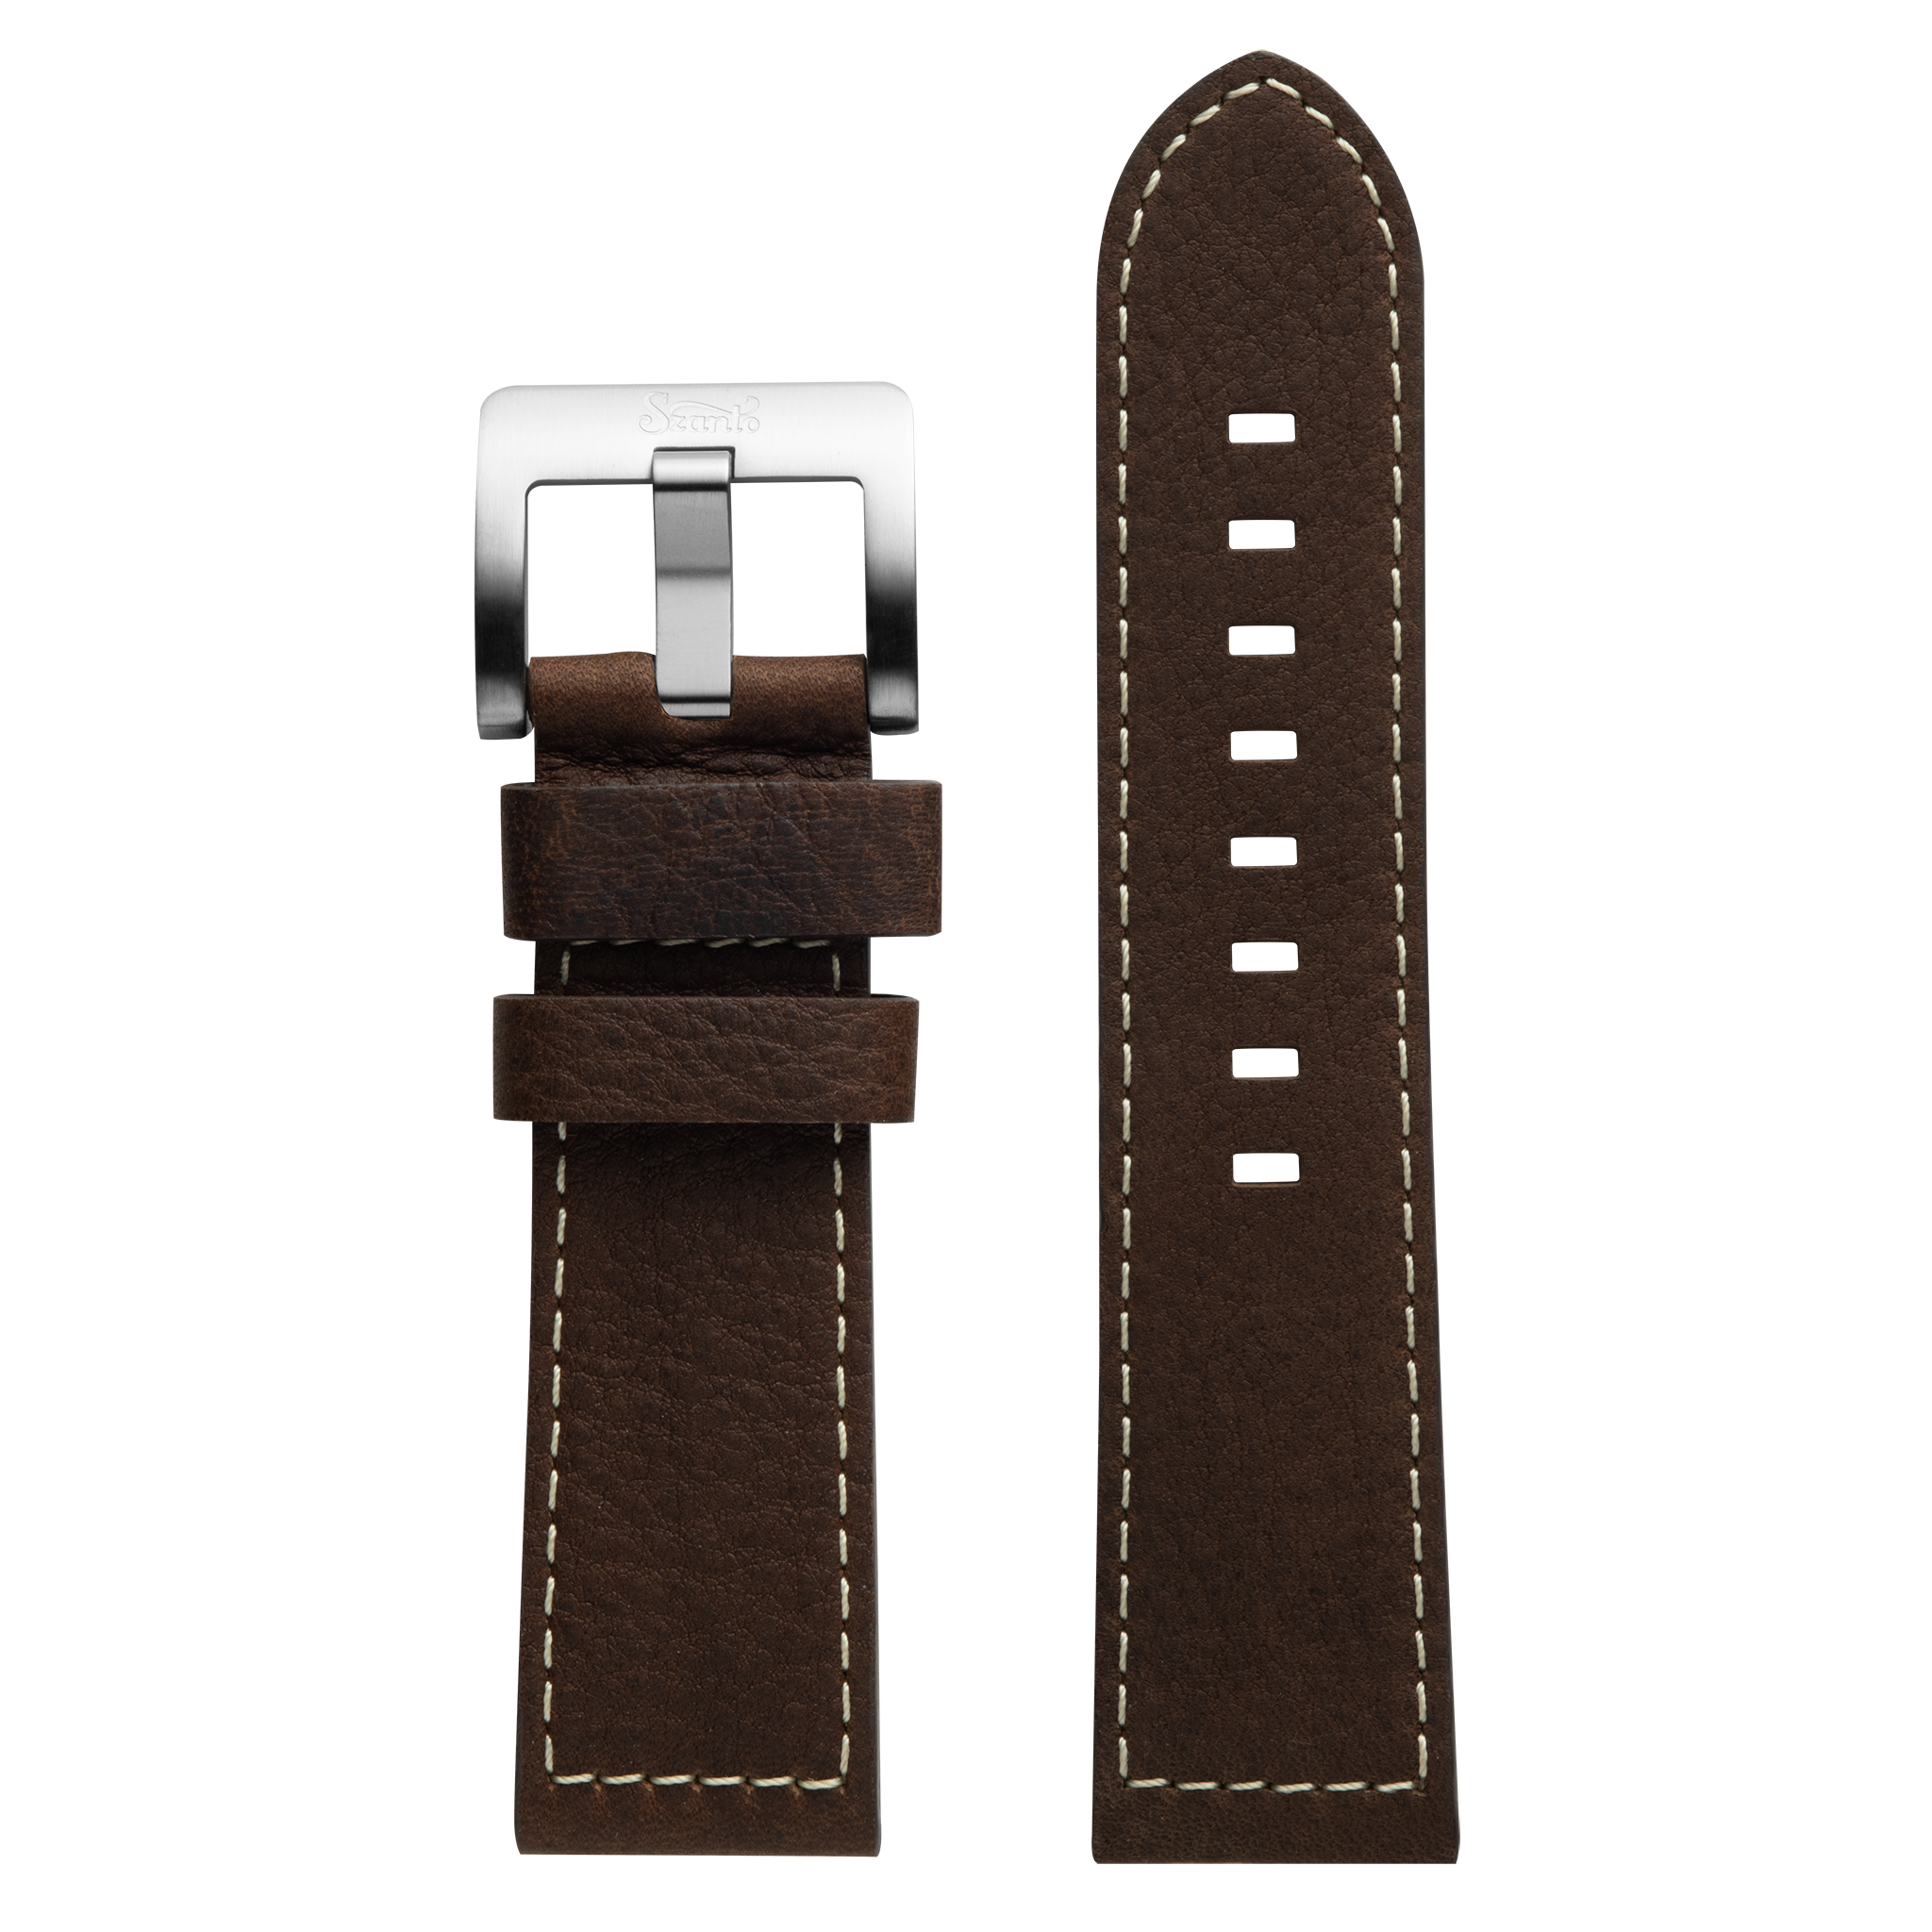 Szanto 24mm Brown Leather Strap/Stainless Steel Buckle - 6100 Series